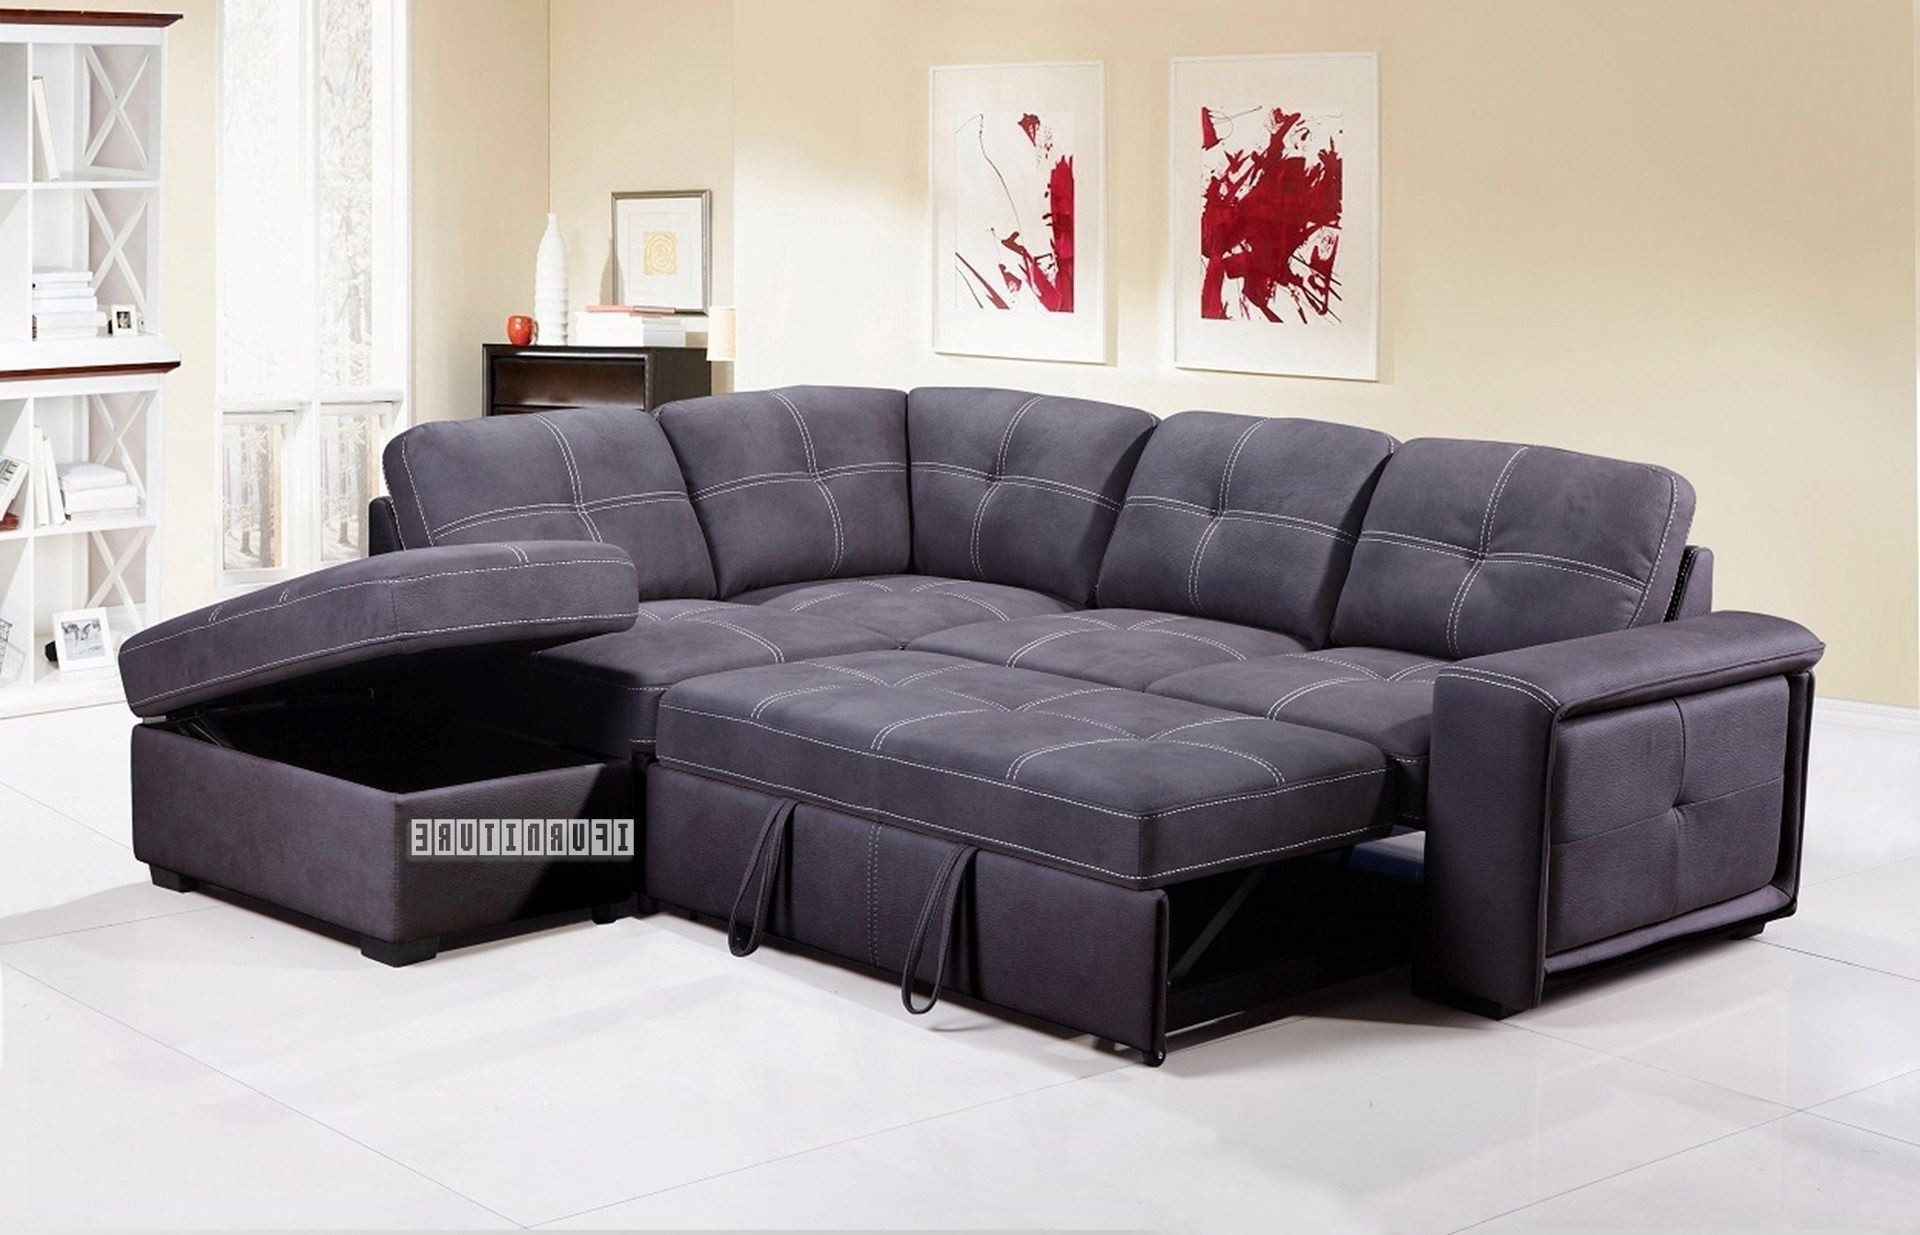 Best And Newest Celine Sectional Futon Sofas With Storage Reclining Couch Within Bellini Sectional Sofa Bed With Storage *grey (View 6 of 20)